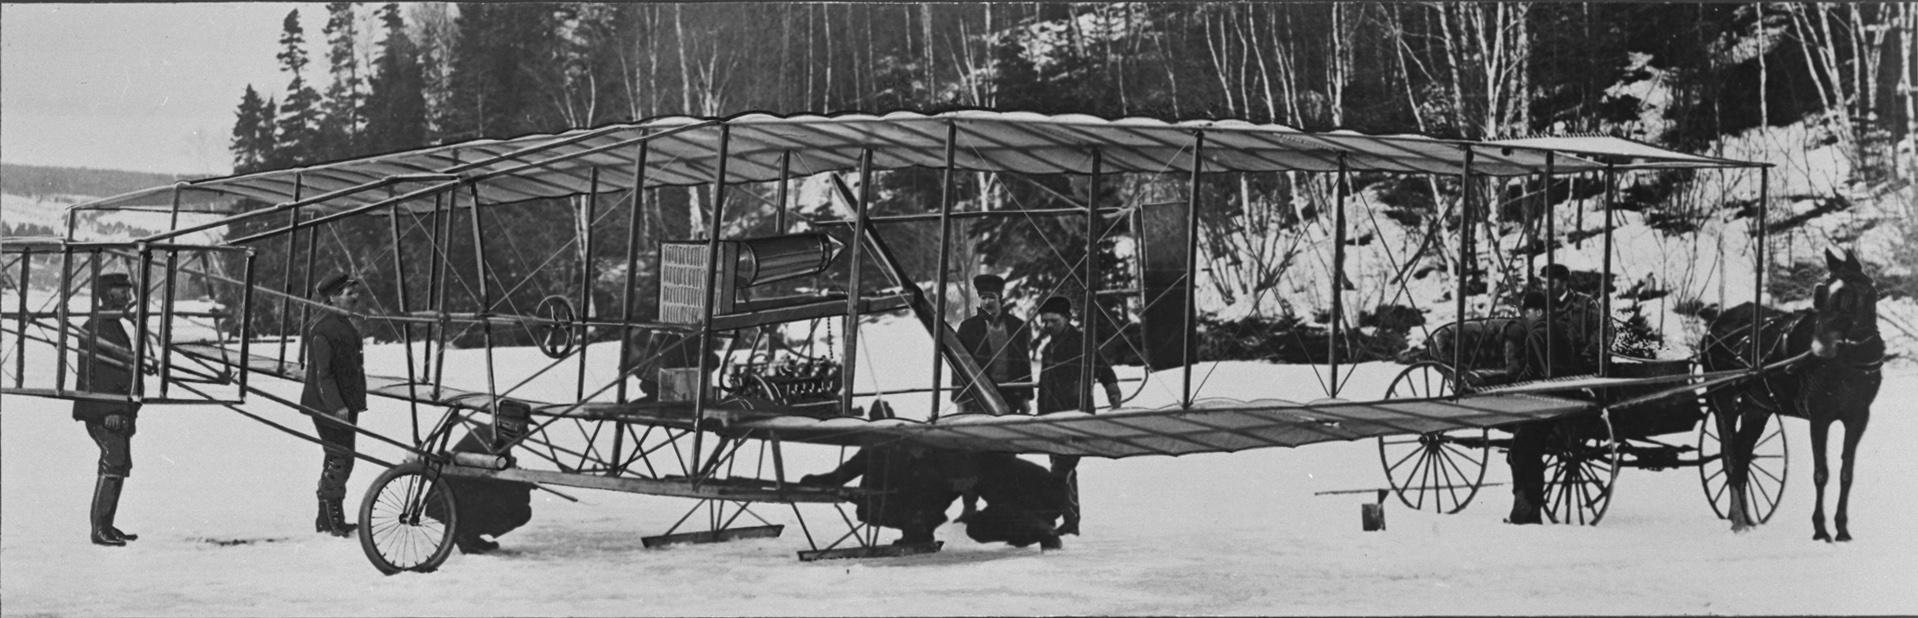 The Silver Dart is prepared for a flight at Baddeck, Nova Scotia, in February 1909. PHOTO: DND Archives, PL-113635